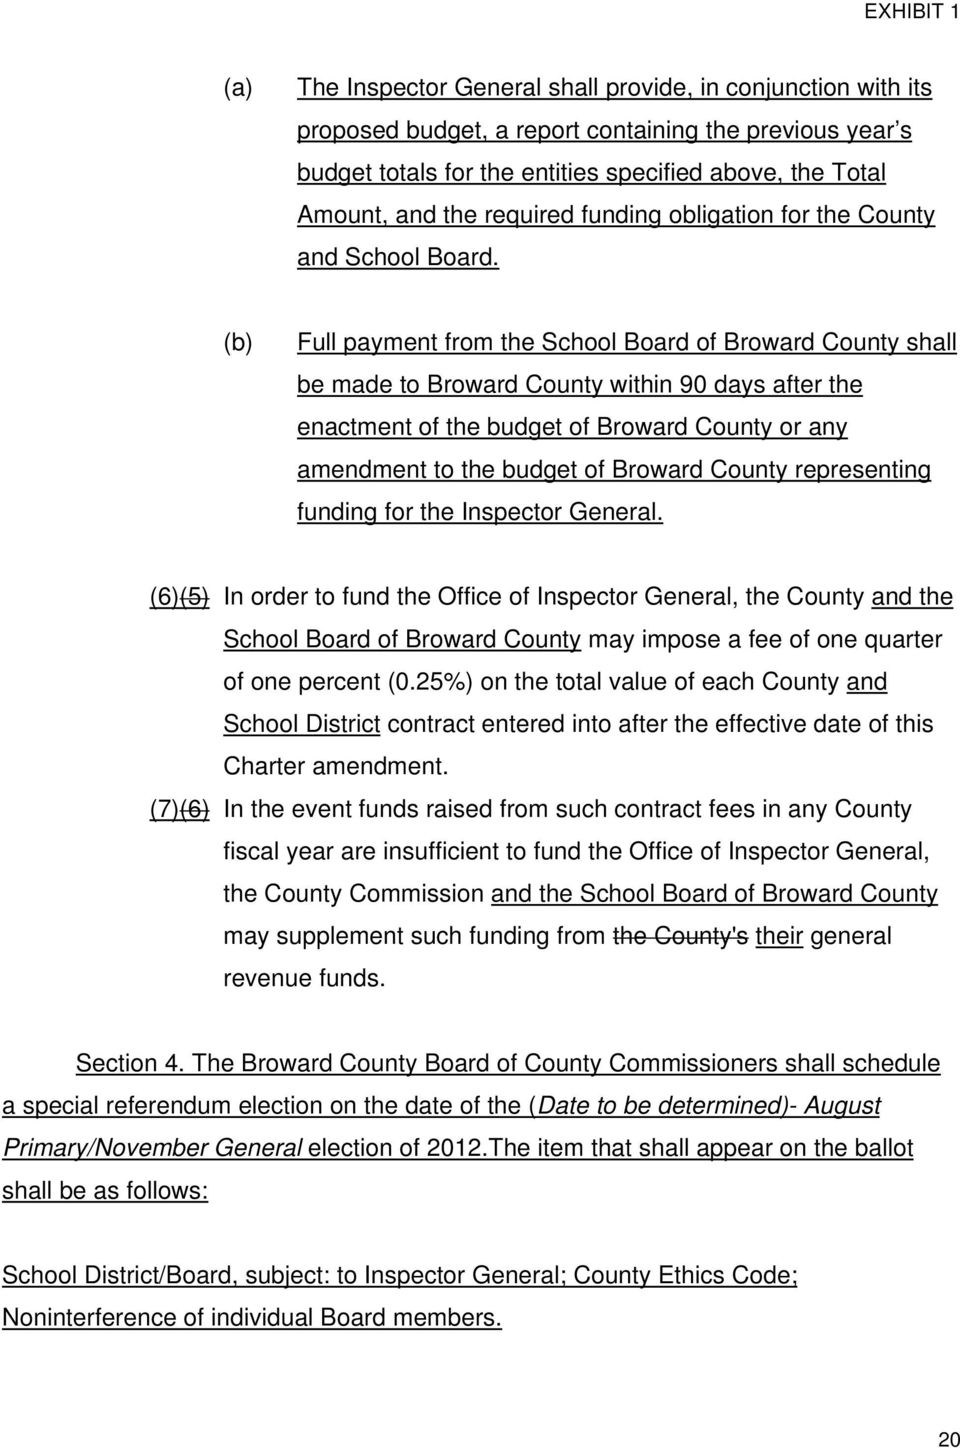 (b) Full payment from the School Board of Broward County shall be made to Broward County within 90 days after the enactment of the budget of Broward County or any amendment to the budget of Broward